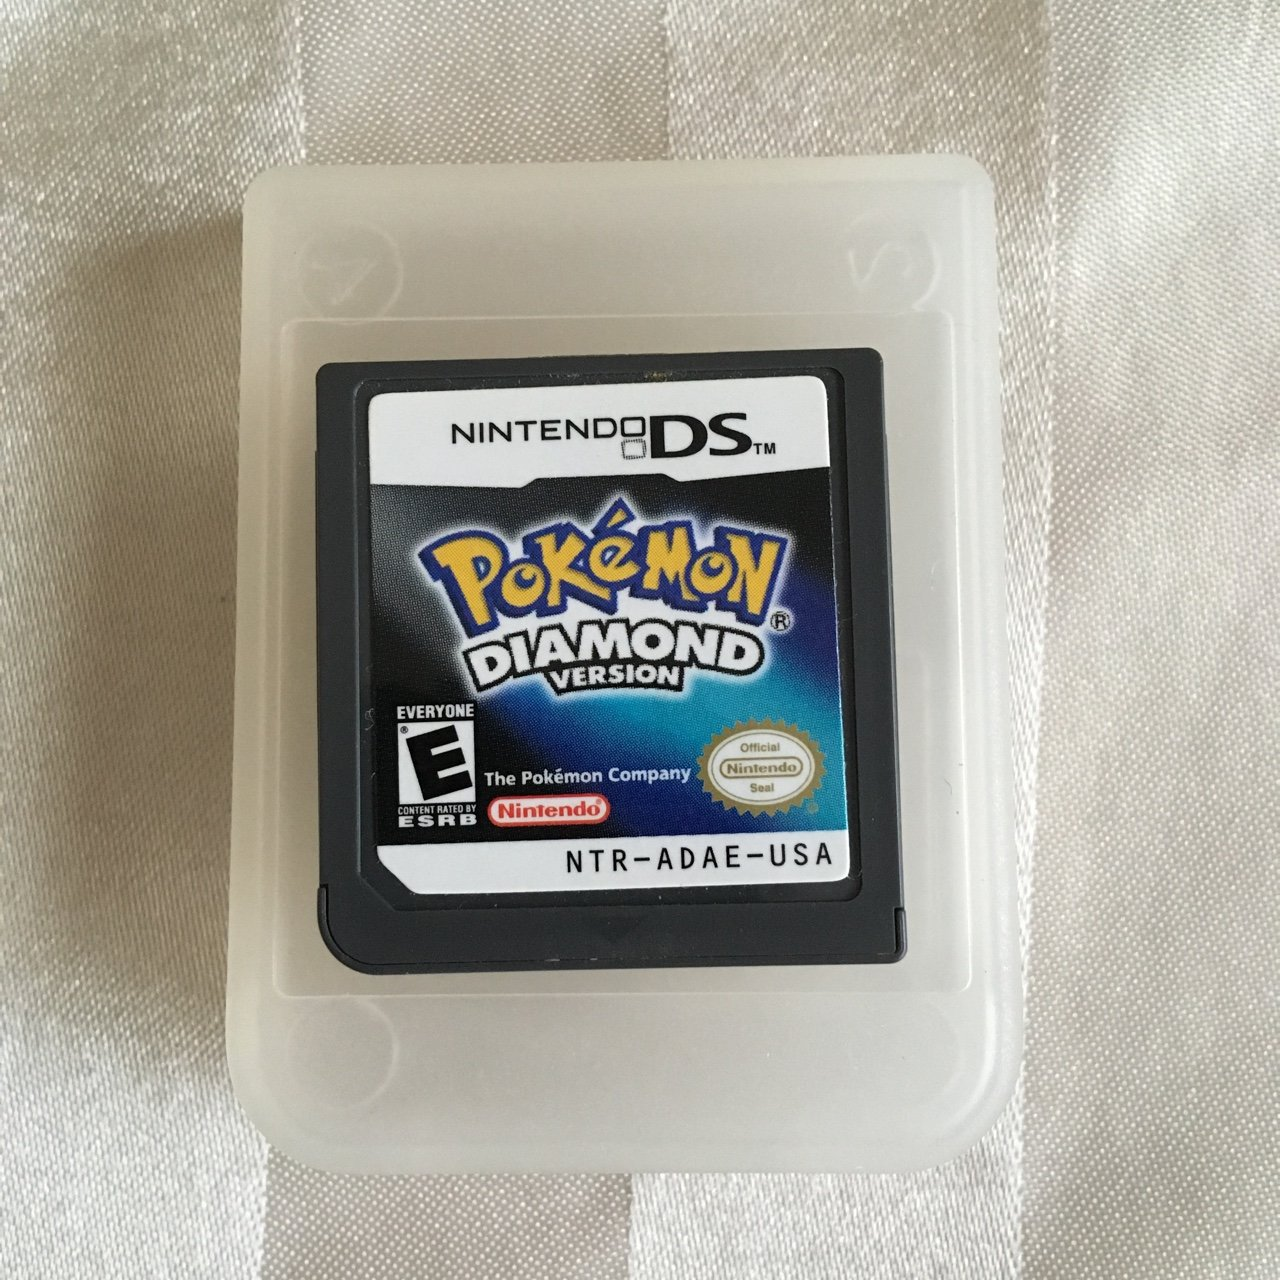 Pokemon Platinum Version Ds Case And Manual Only *no Game* Nintendo Video Games & Consoles